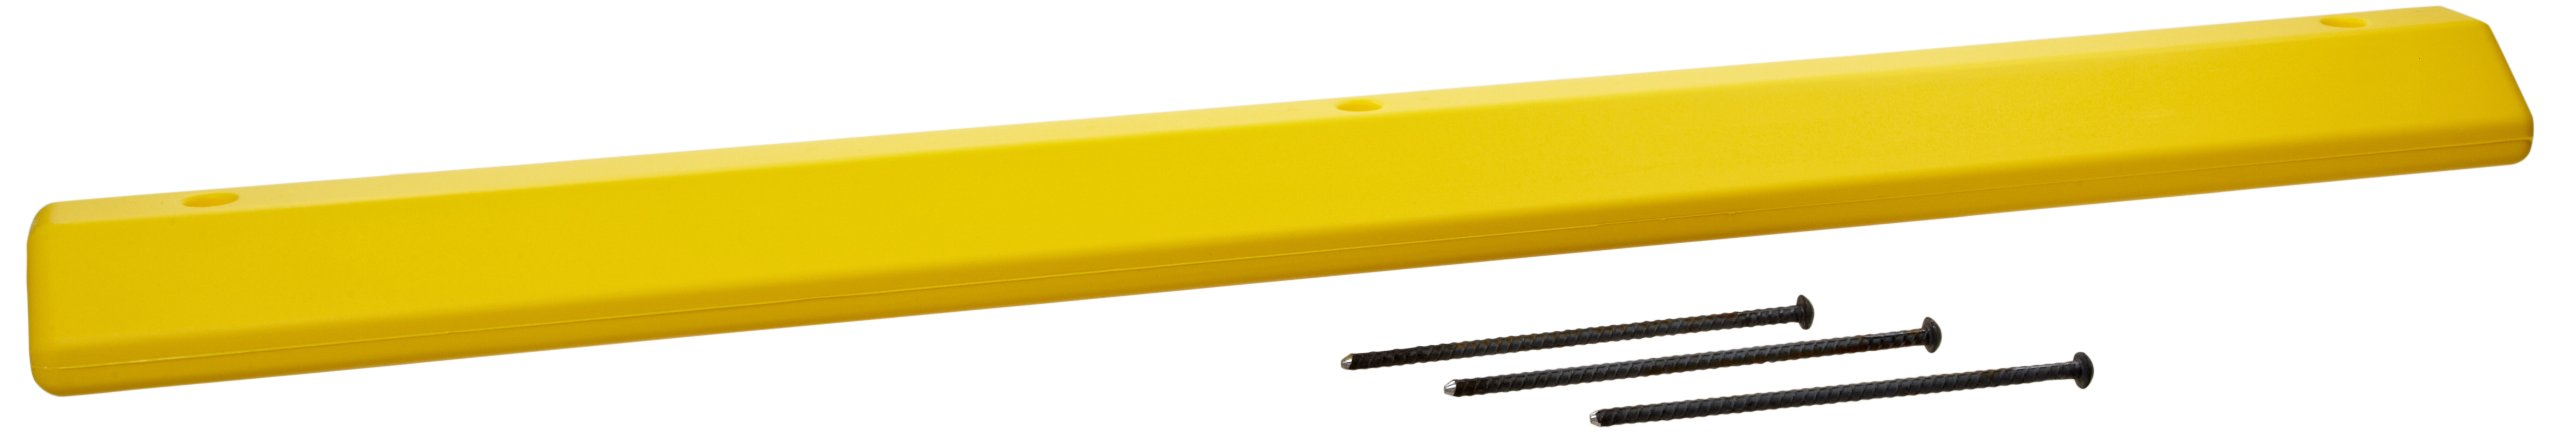 Eagle 1790Y Yellow High Density Polyethylene Parking Stop with Anchor Kit, 72'' Length, 8'' Width, 4'' Height